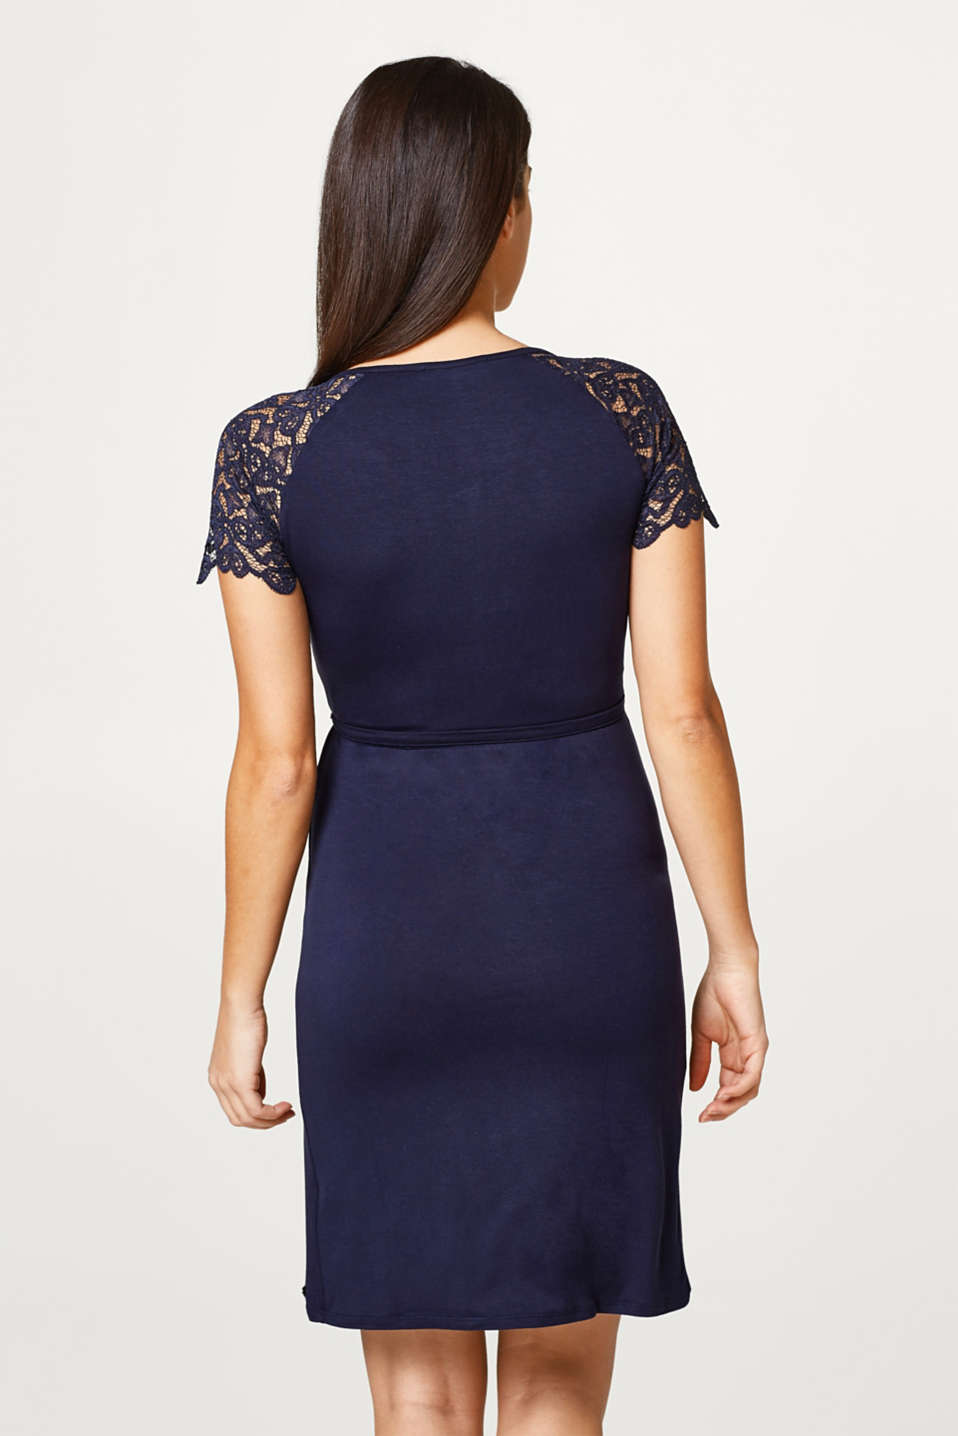 Nursing dress with stretch